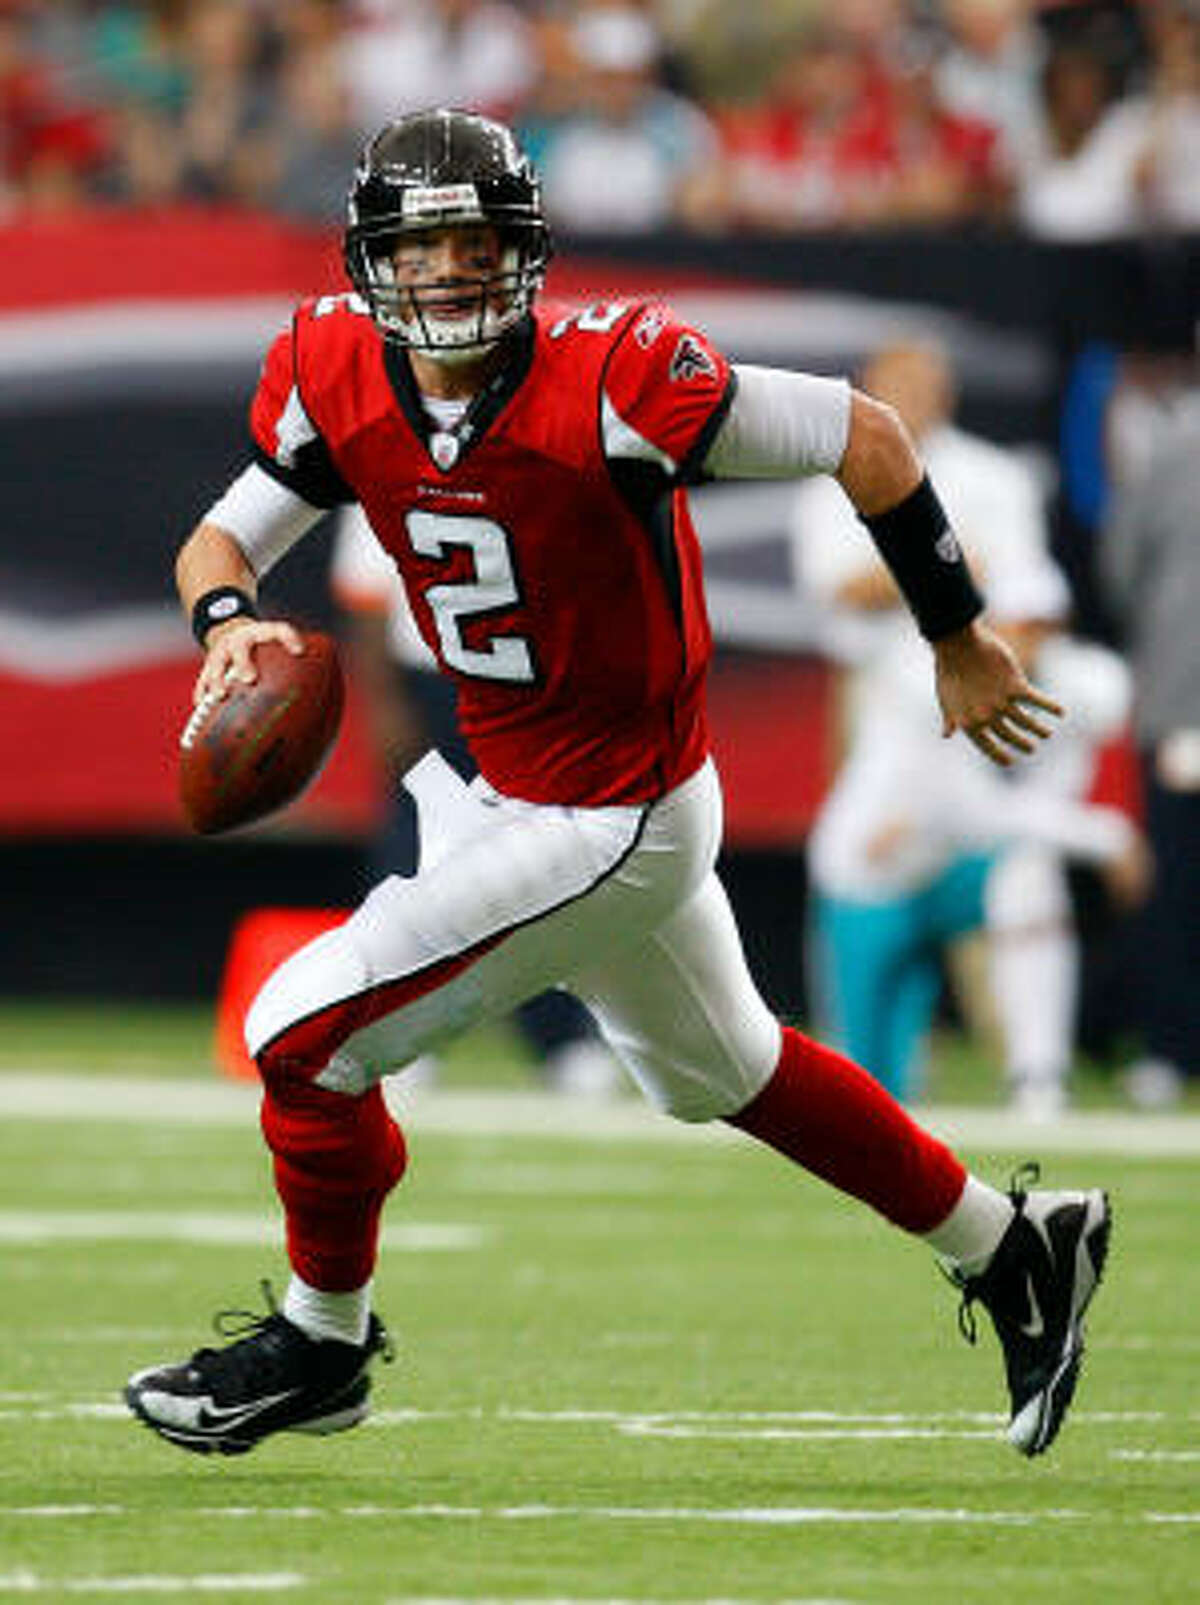 Atlanta Falcons Needs: More offensive consistency; another solid WR; steadier secondary; more dangerous pass rush. Strengths: QB Matt Ryan (top photo), WR Roddy White, ageless TE Tony Gonzalez; budding linebackers.